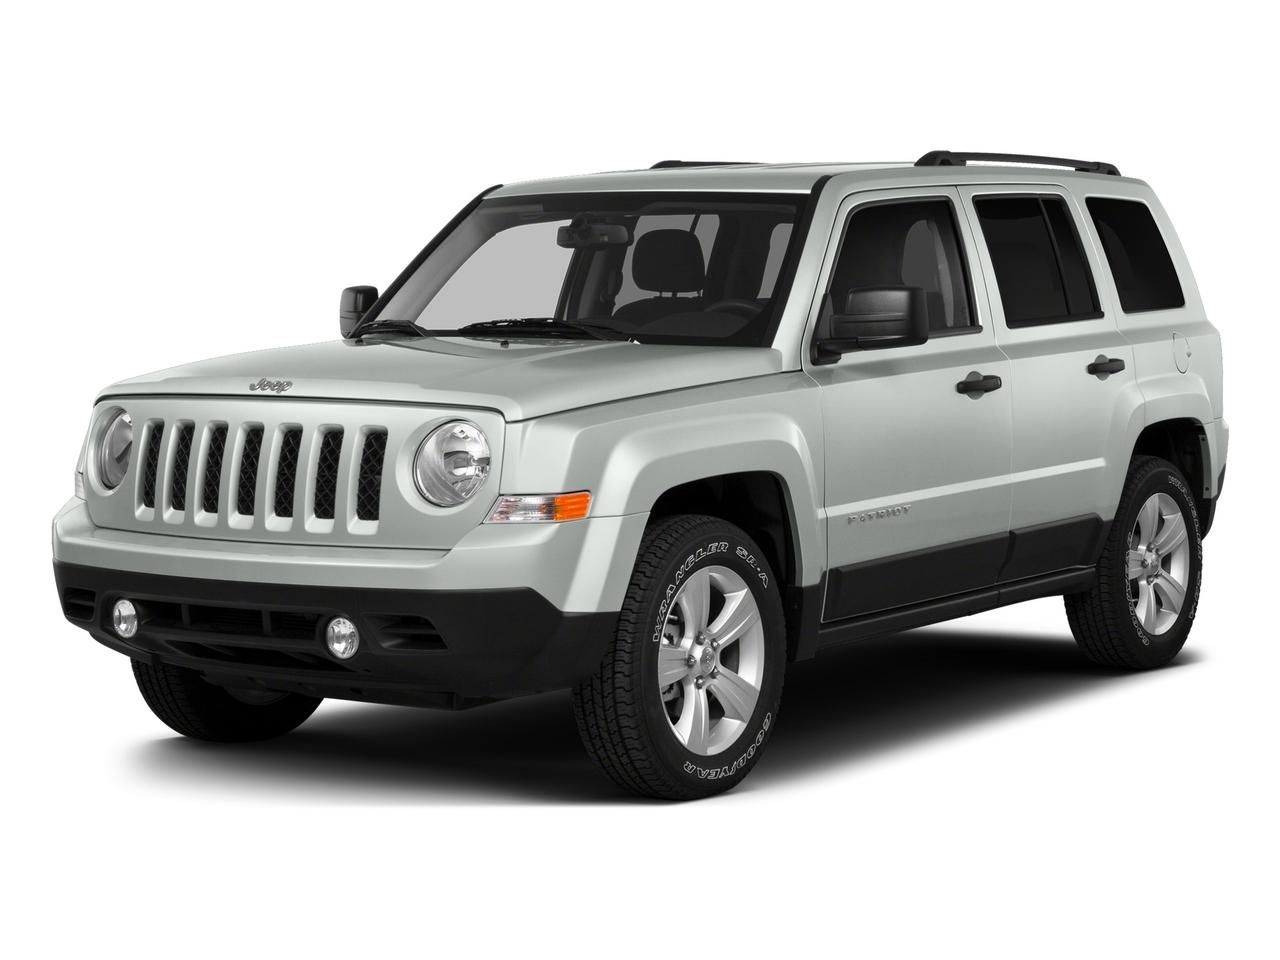 2015 Jeep Patriot Vehicle Photo in TEMPLE, TX 76504-3447